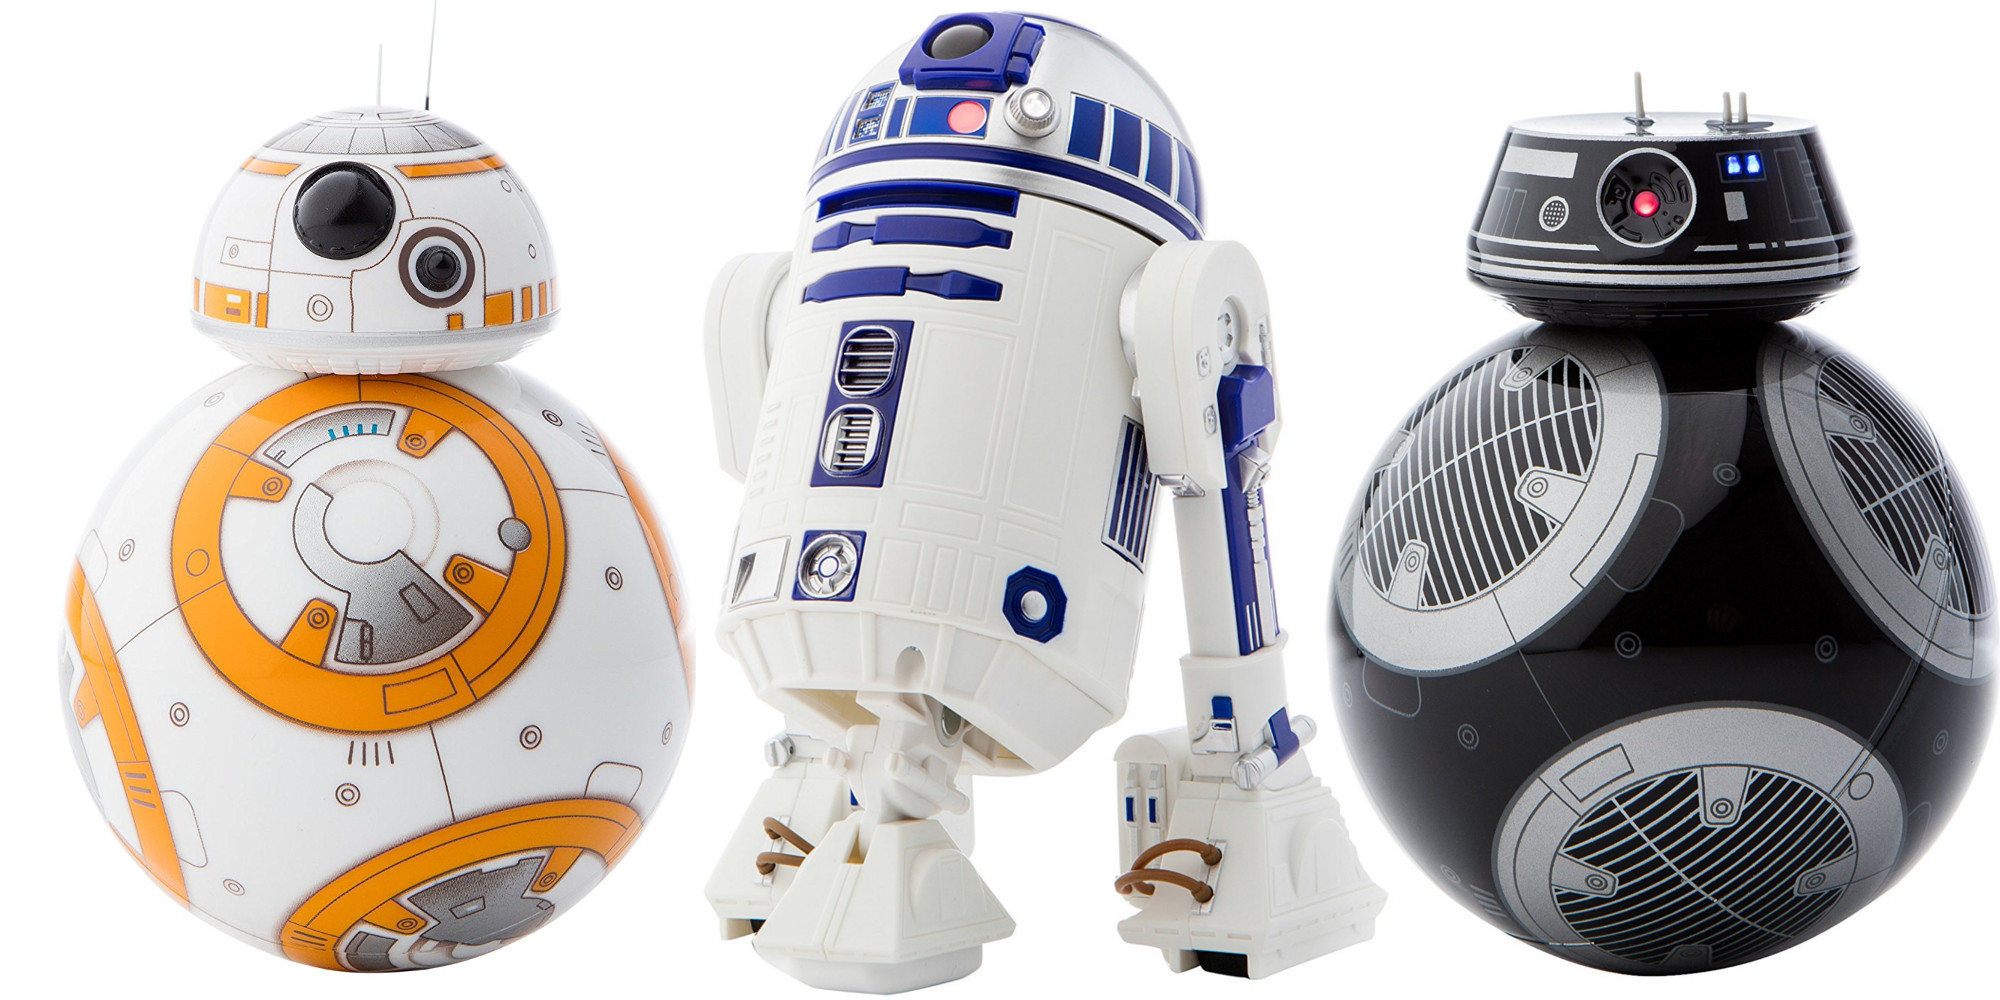 StarWars Droids by Sphero